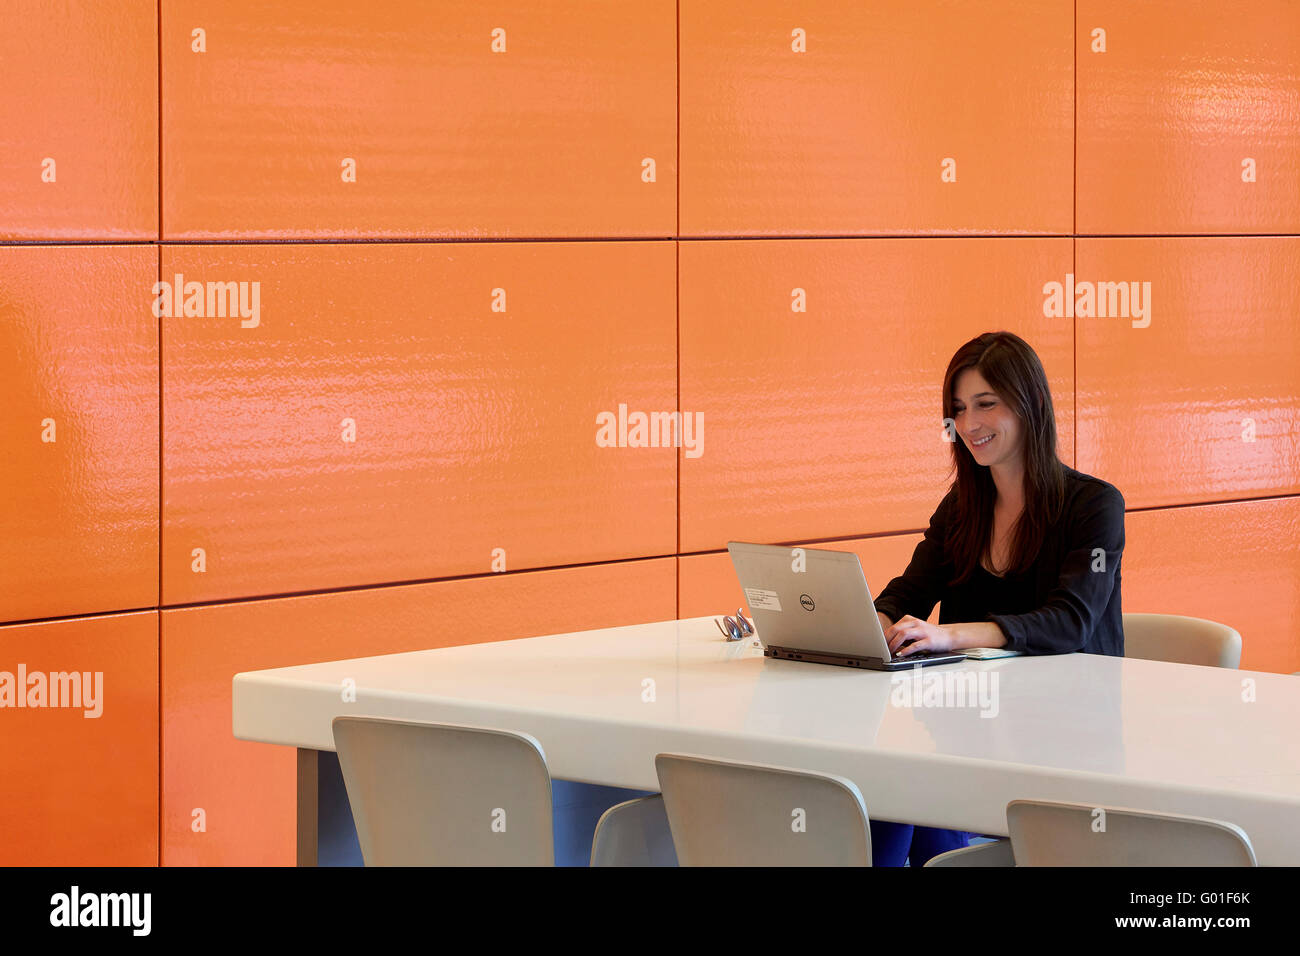 Work desk and iconic orange colored ceramic tiles central saint work desk and iconic orange colored ceramic tiles central saint giles london united kingdom architect renzo piano building dailygadgetfo Choice Image